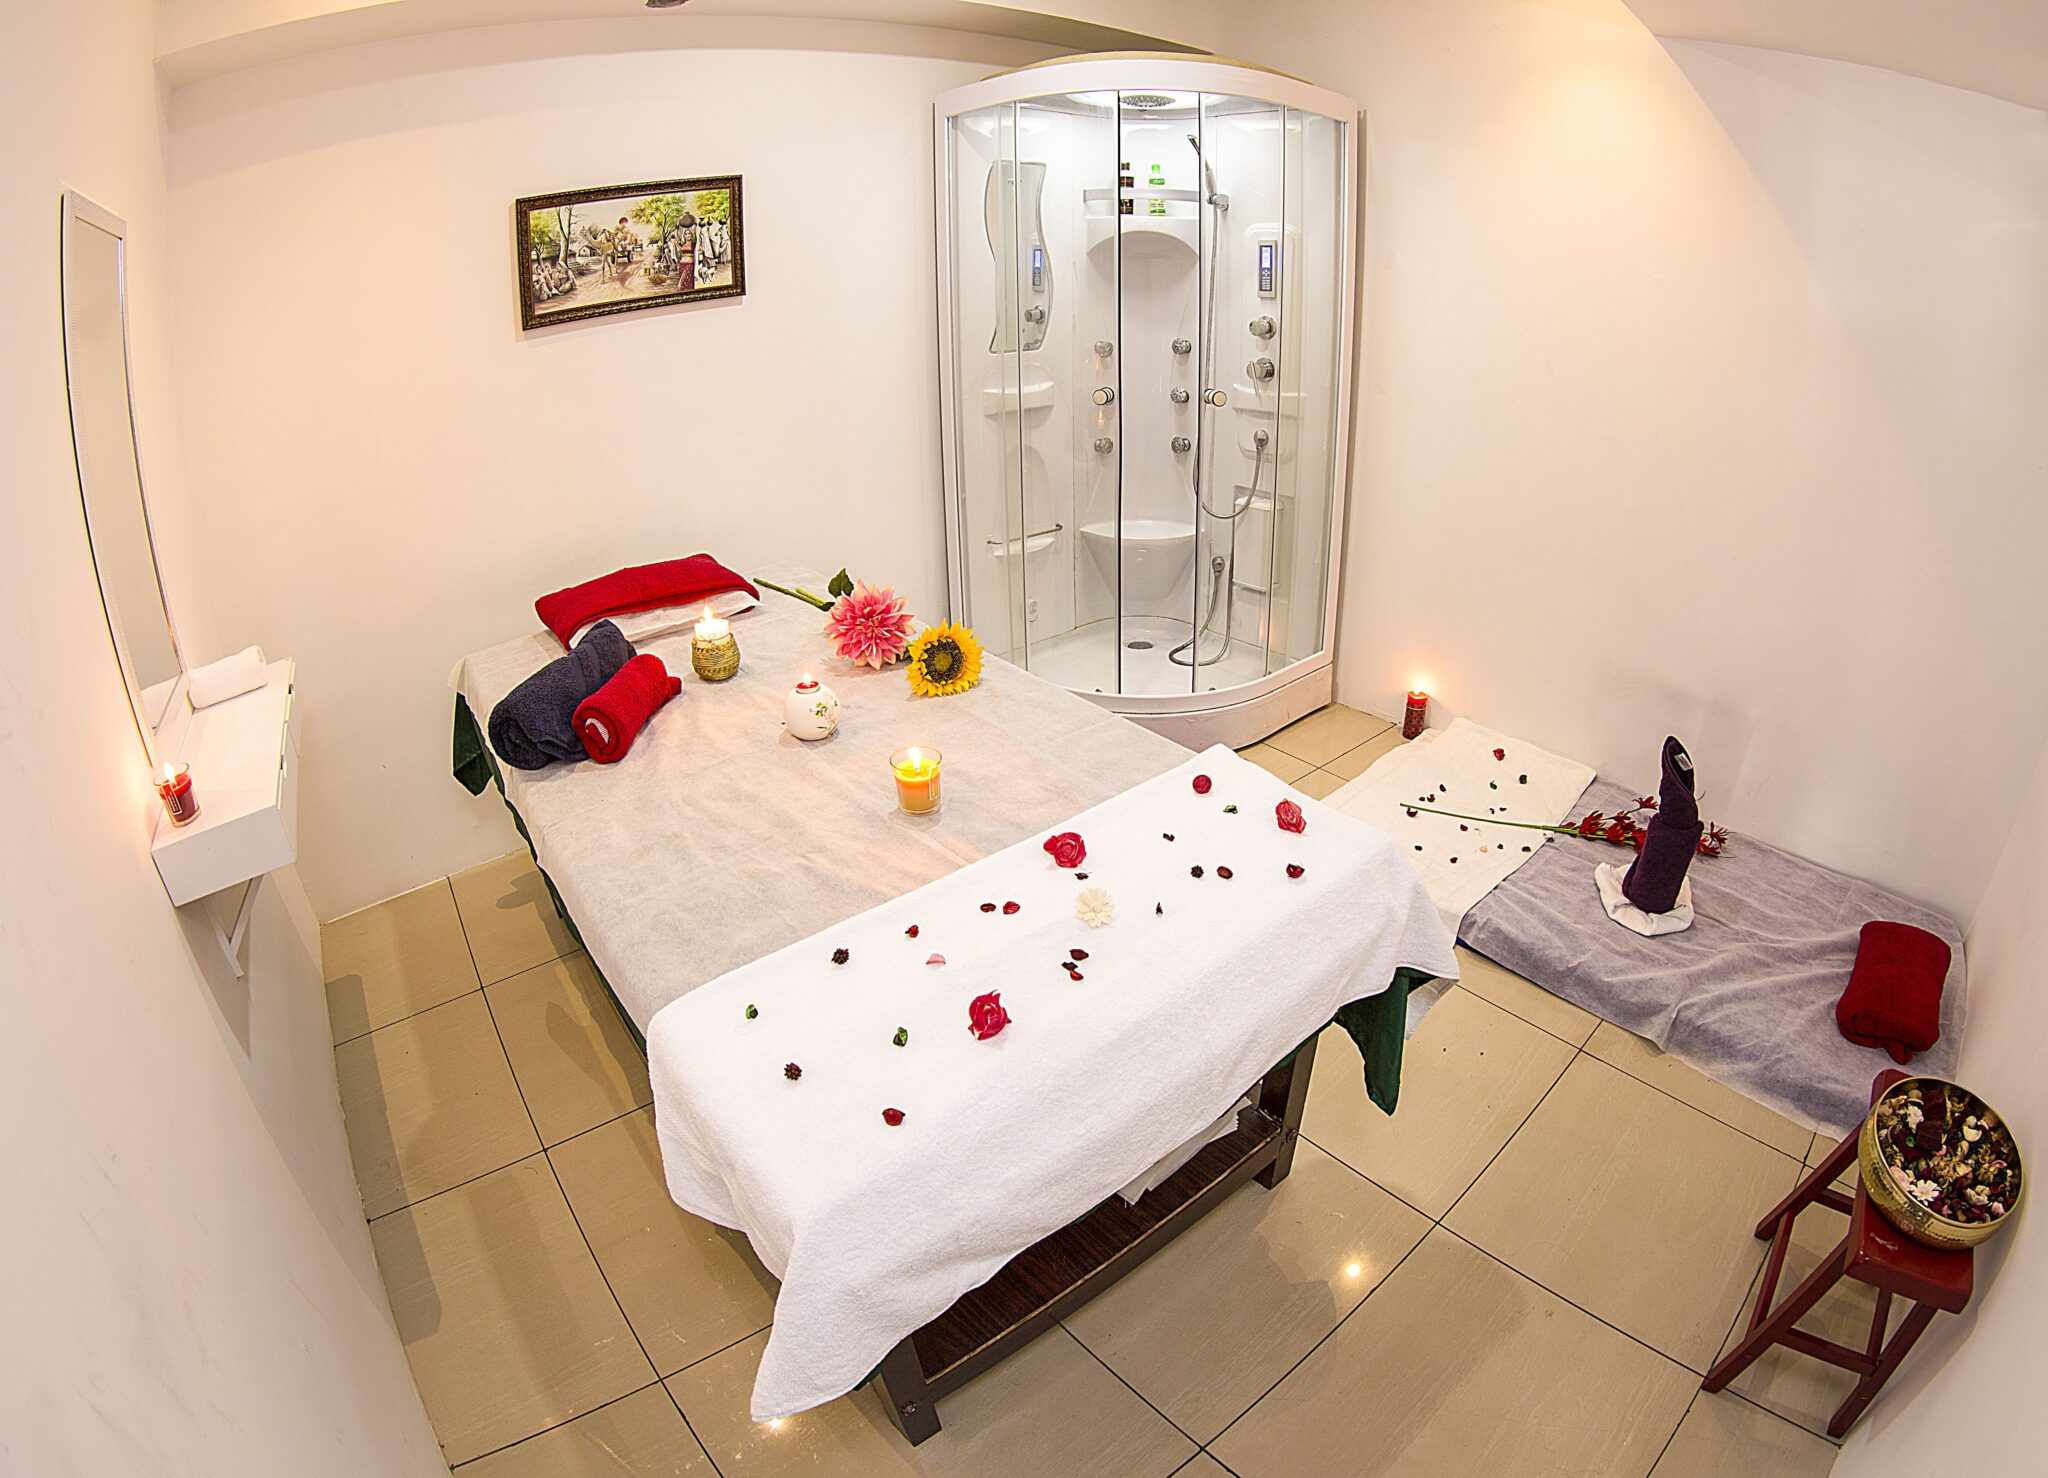 A Full view of the massage room with a beautifully decorated bed with fresh flowers and aromatic candles. The extra Floor bed is also provided at the side of the bed. A separate shower room is attached near the bed for customers convenience. A mild light effect is given in the background to improve the elegance of the spa.